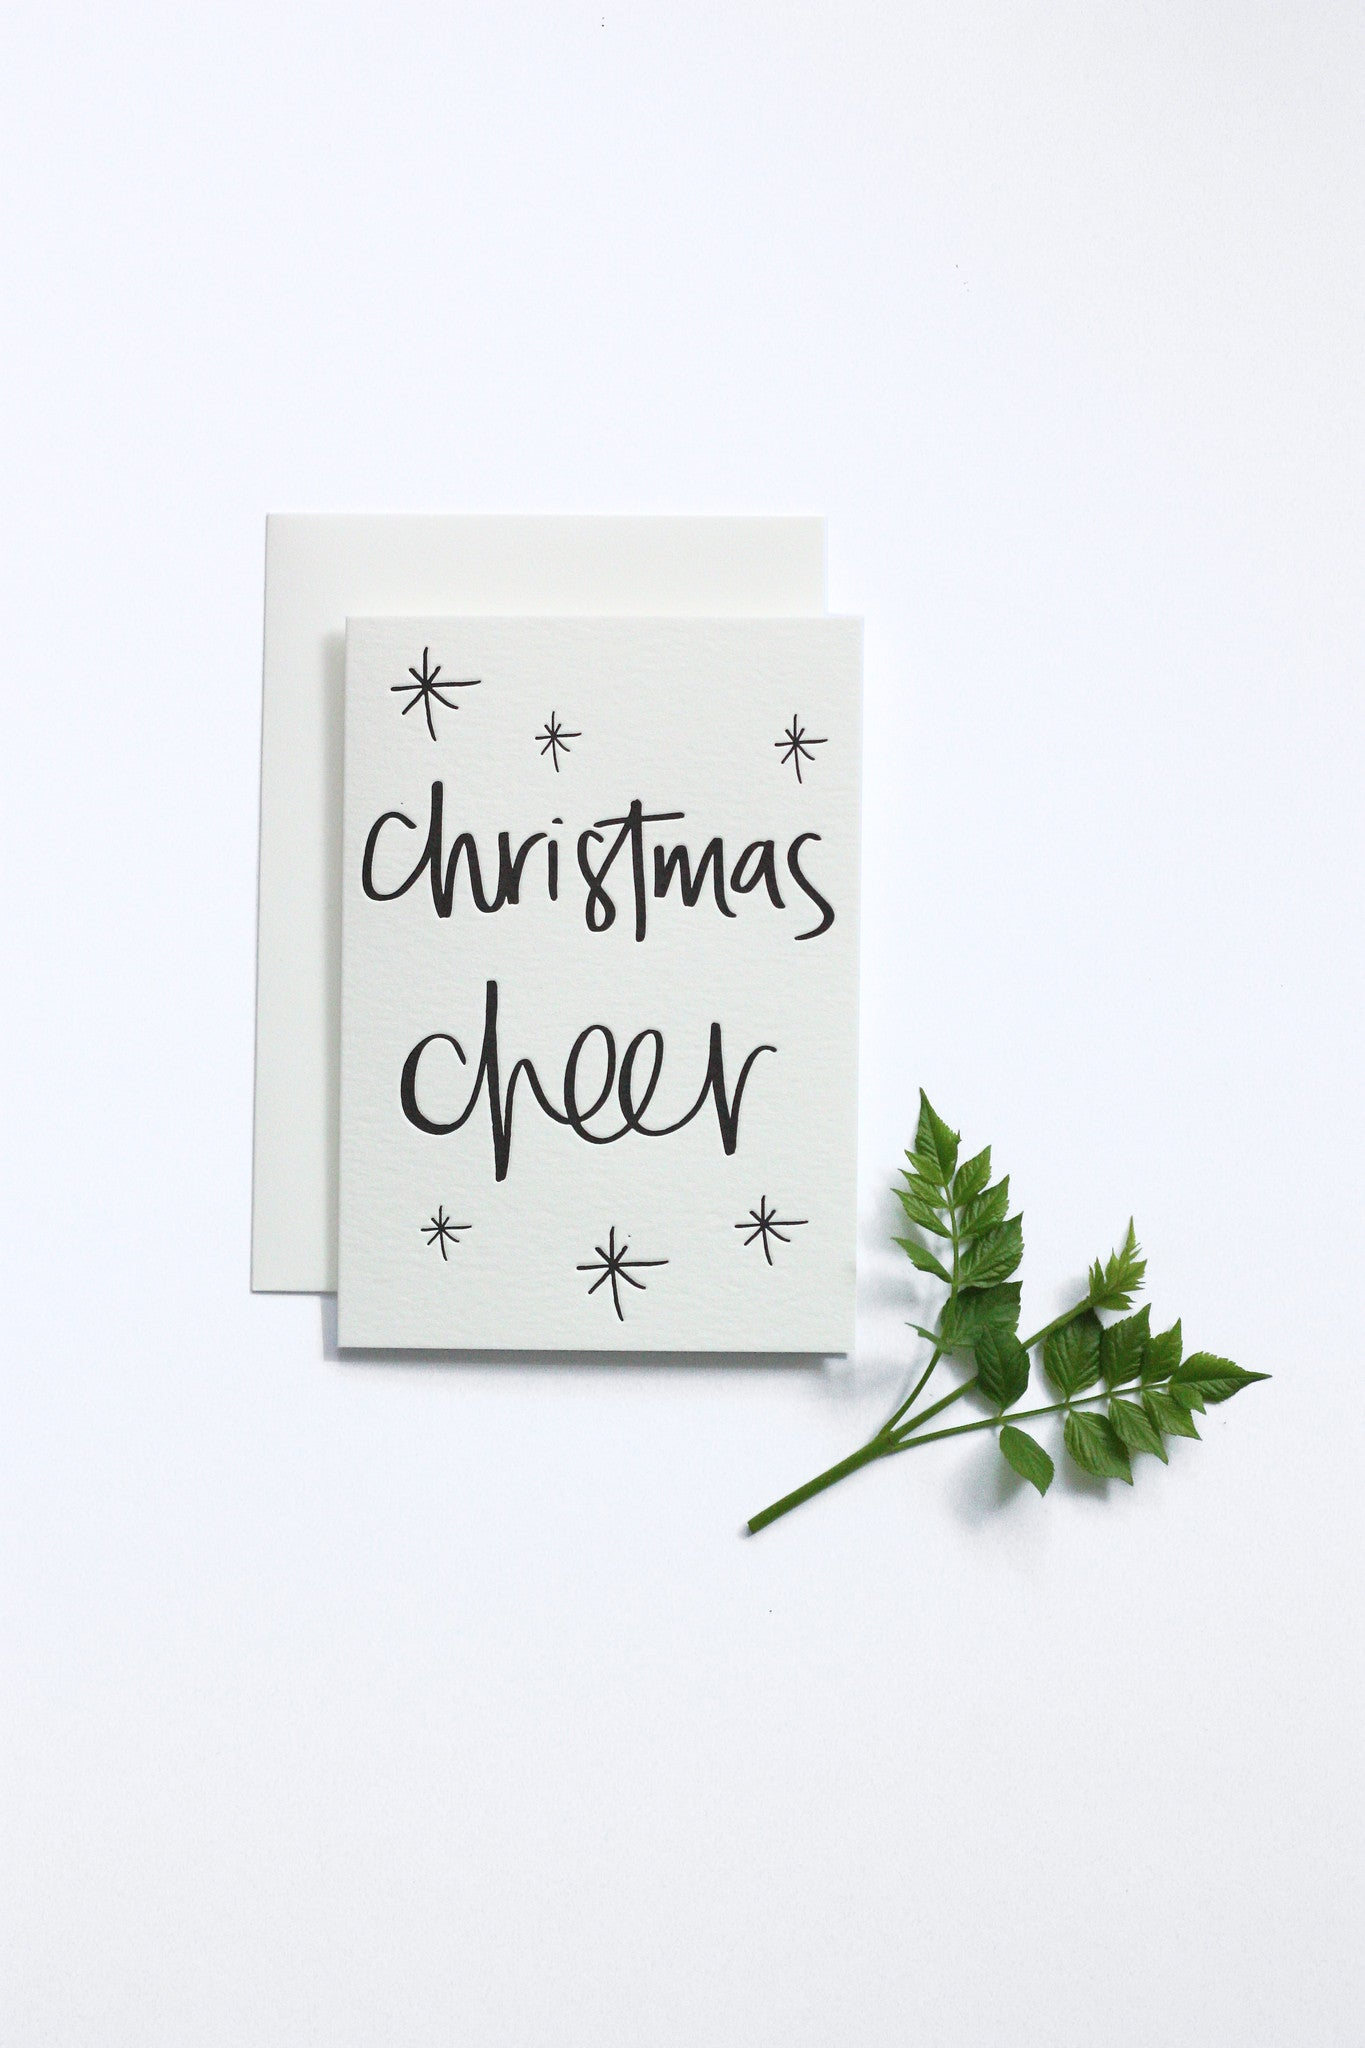 CHRISTMAS CHEER - Words She Wrote